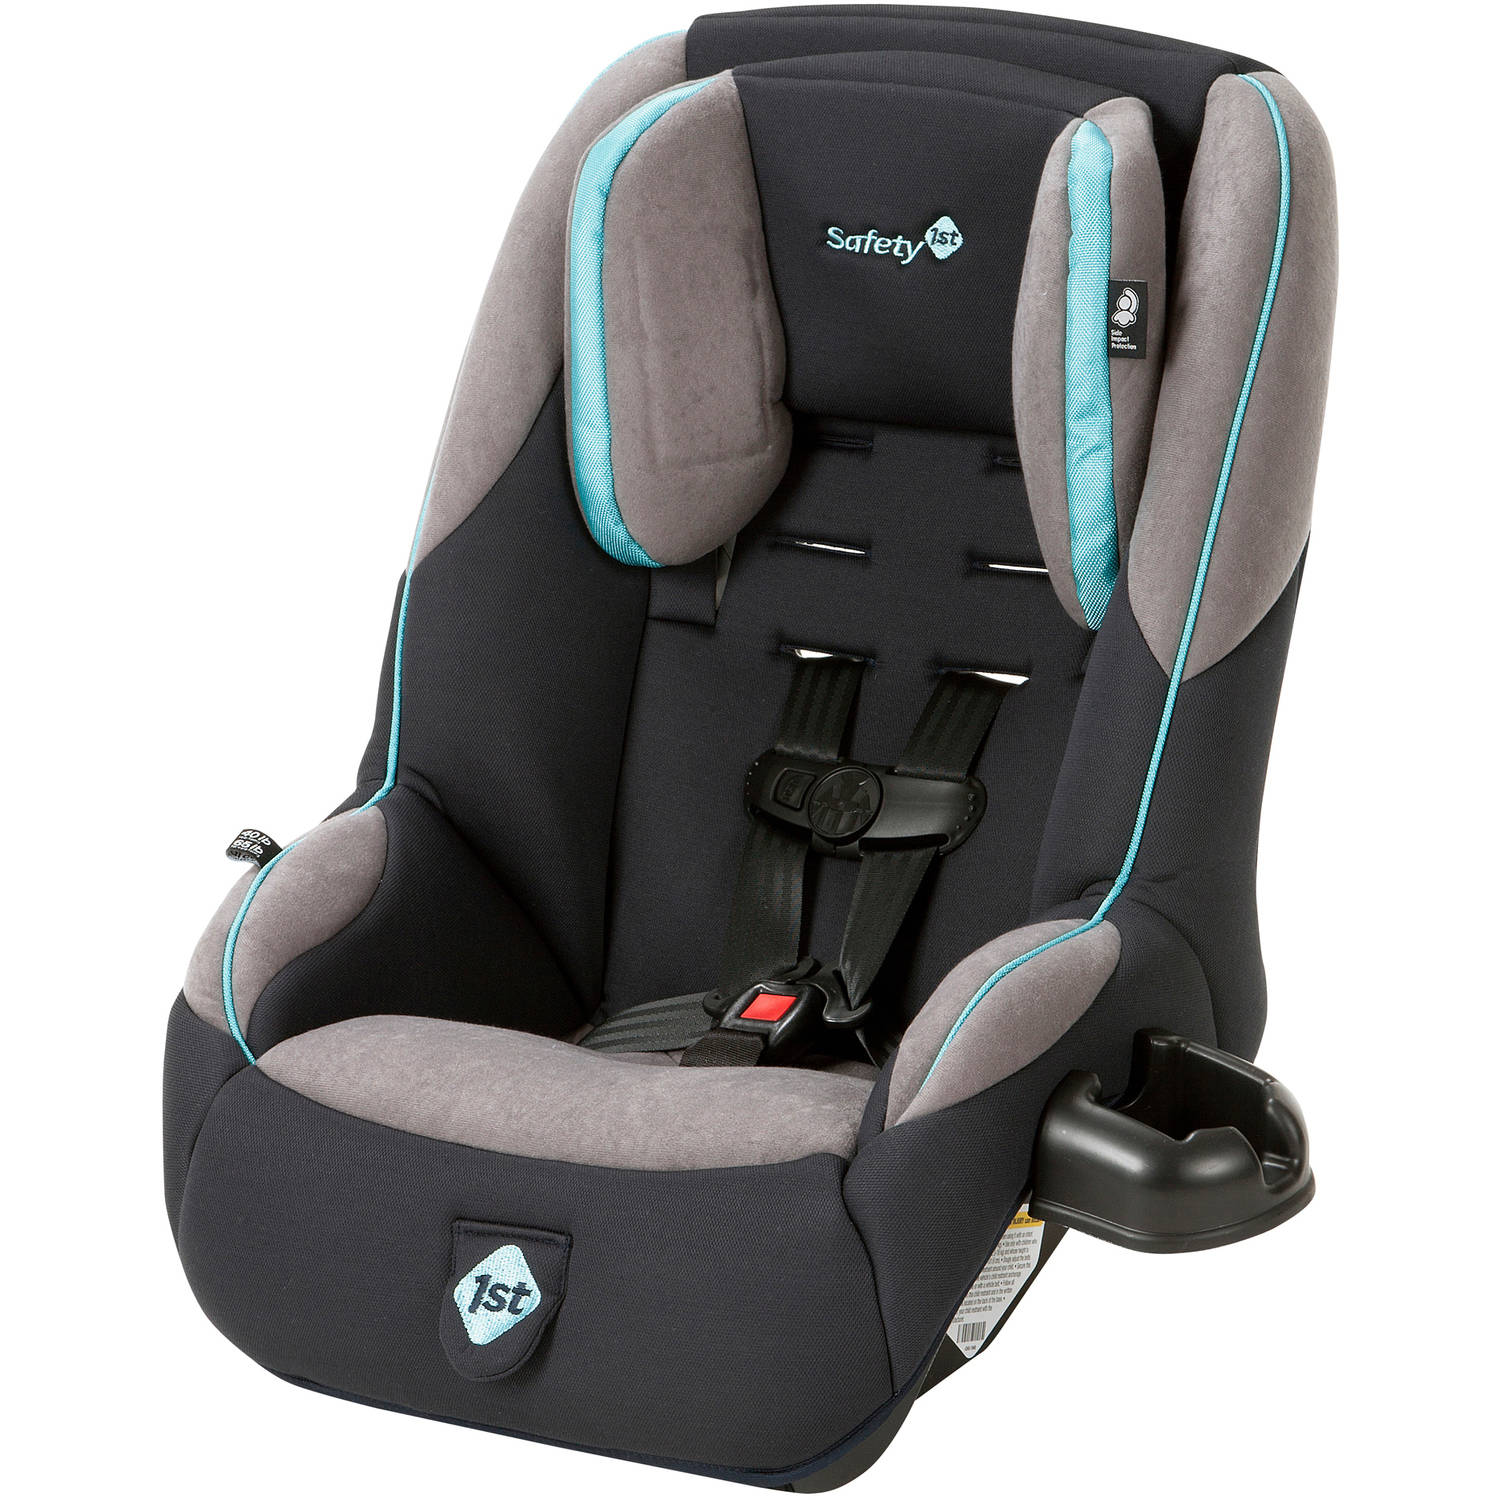 Baby Car Seats At Target Shield Small Beloveds From Blustery Elements With This